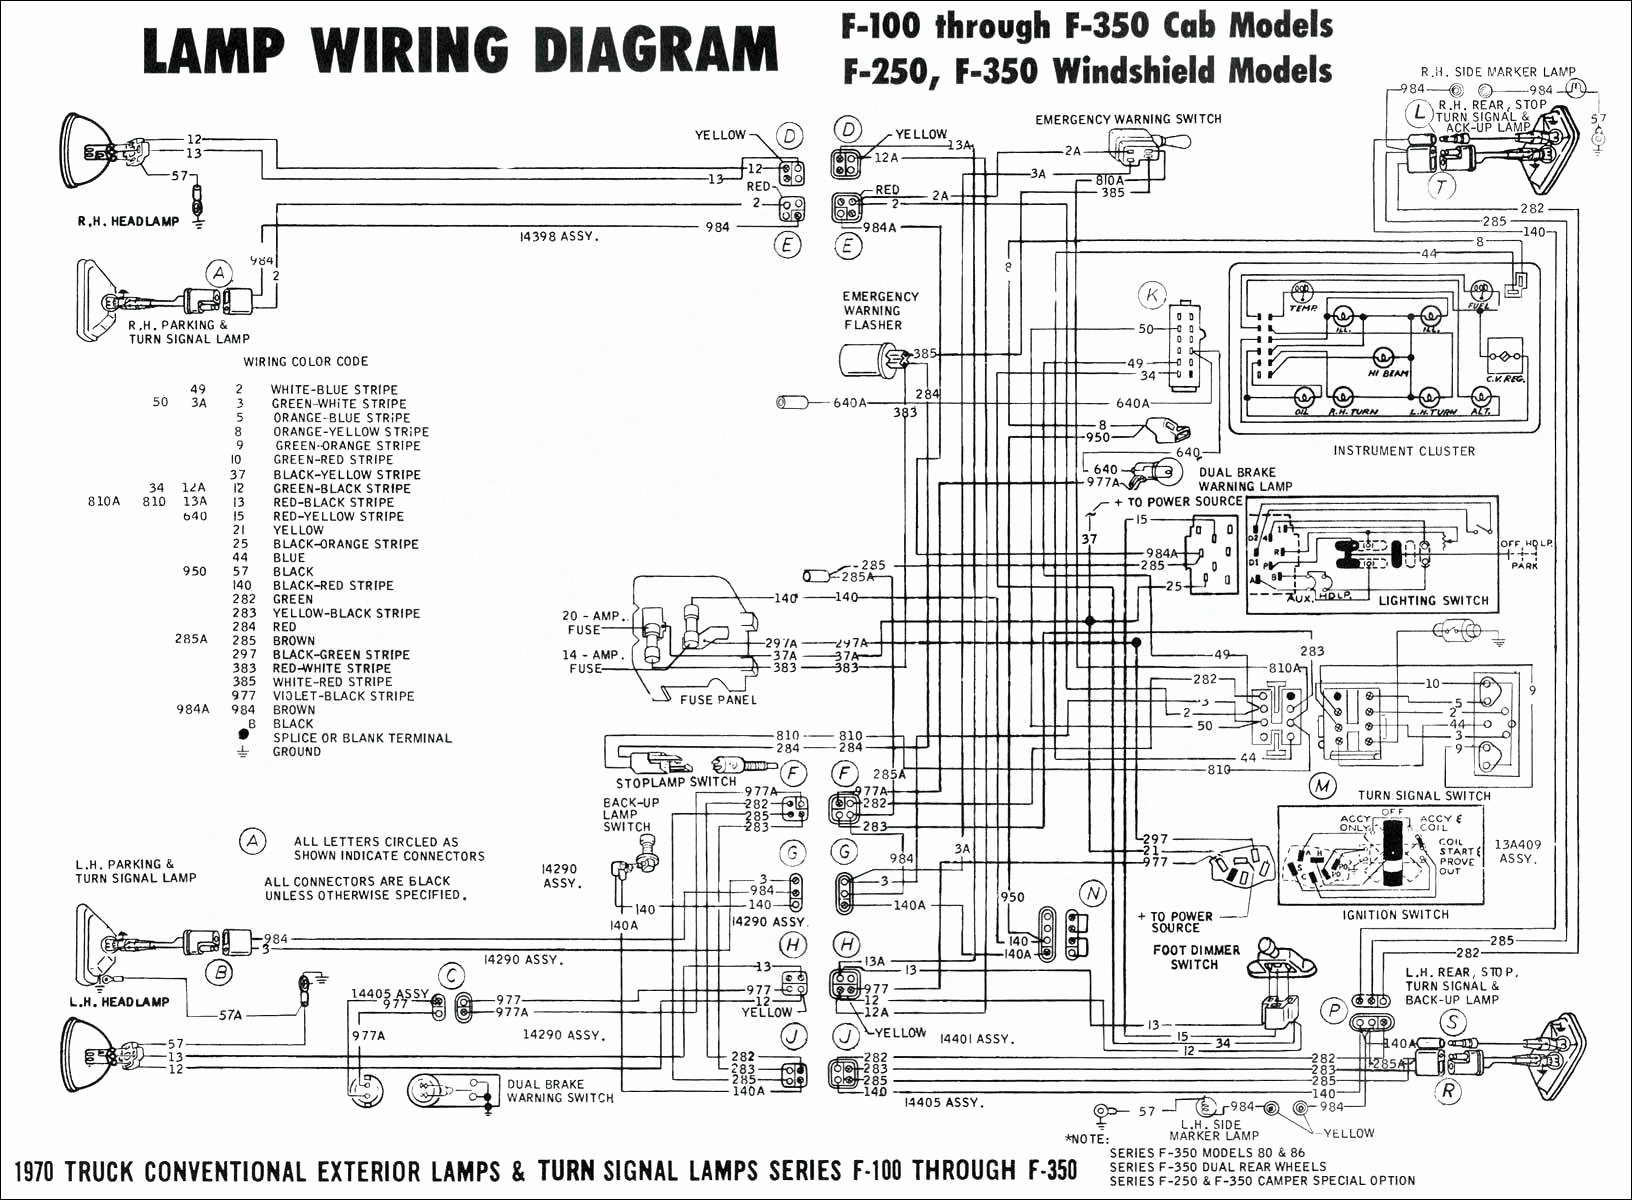 honda gx390 wiring diagram Download-Honda Gx390 Wiring Diagram Luxury Alternative Wiring Note at the Delta Contactor that the Phases Swap 9-p